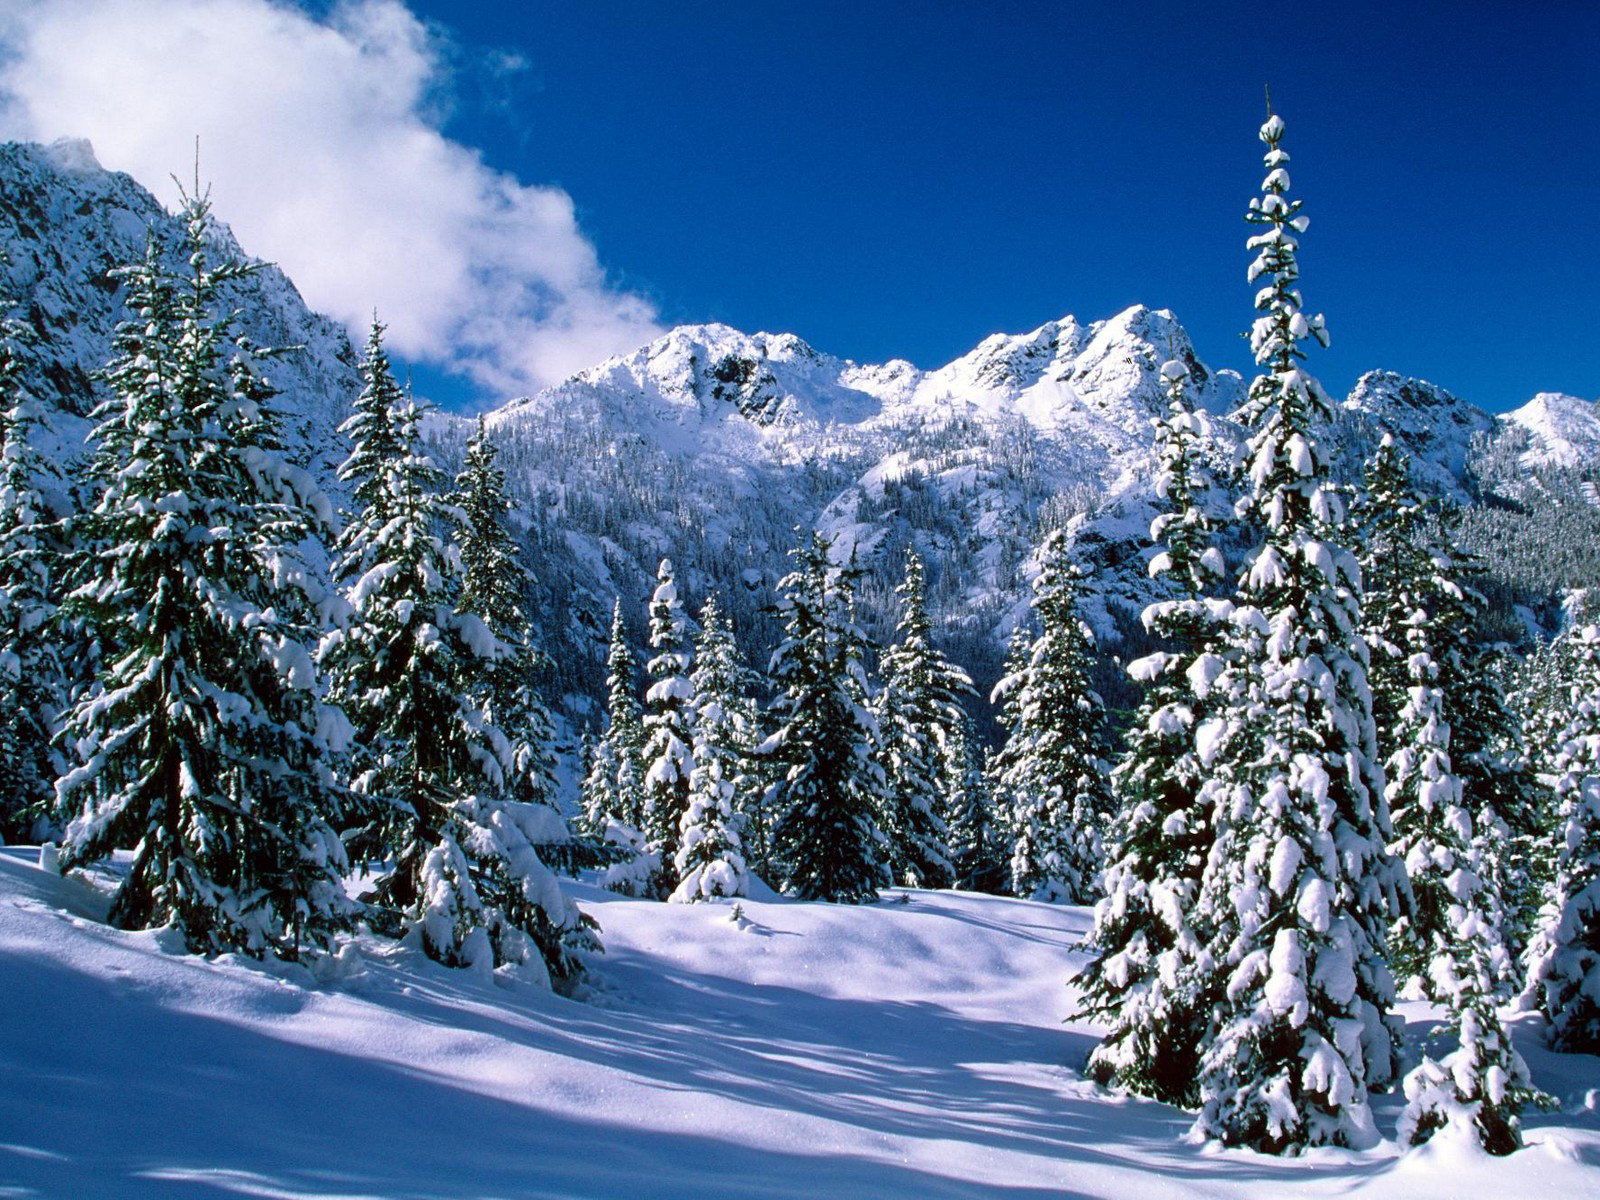 Wallpaper Of Natural Scenery Of Snow Wallpaper World 1600x1200